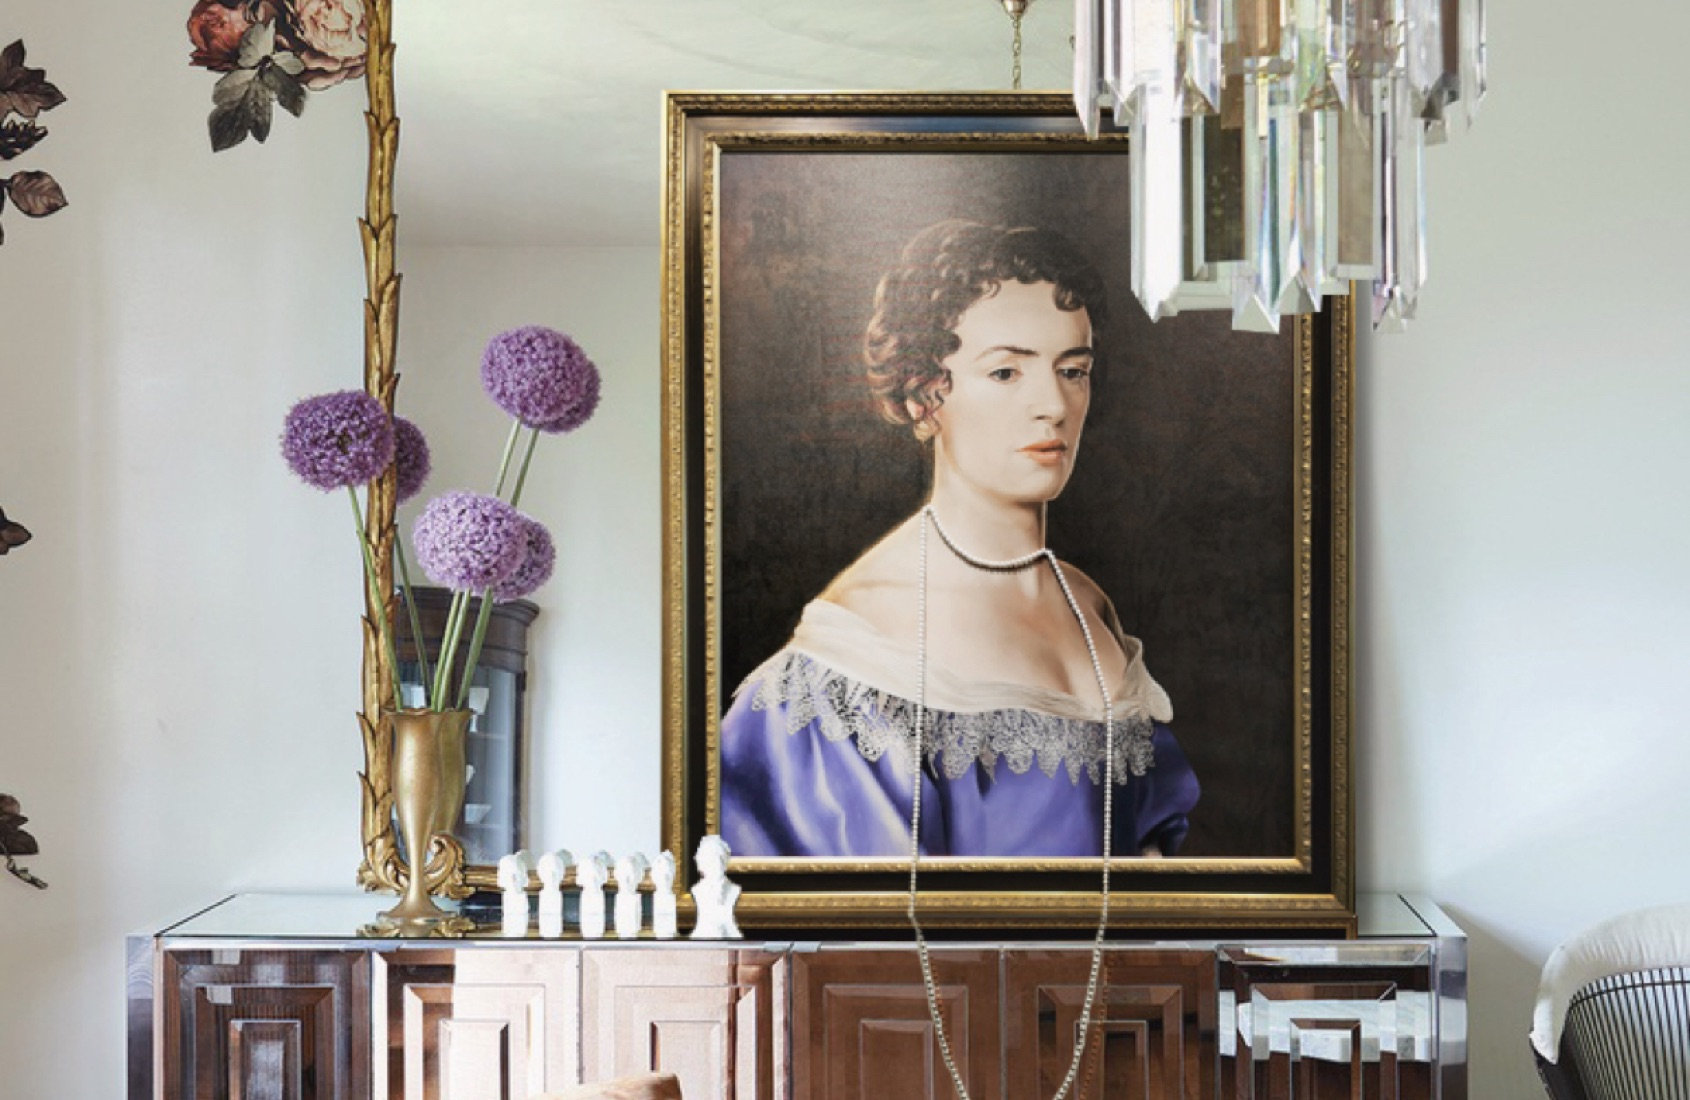 Timeless Portraits Lavish With Sophisticated Affluence